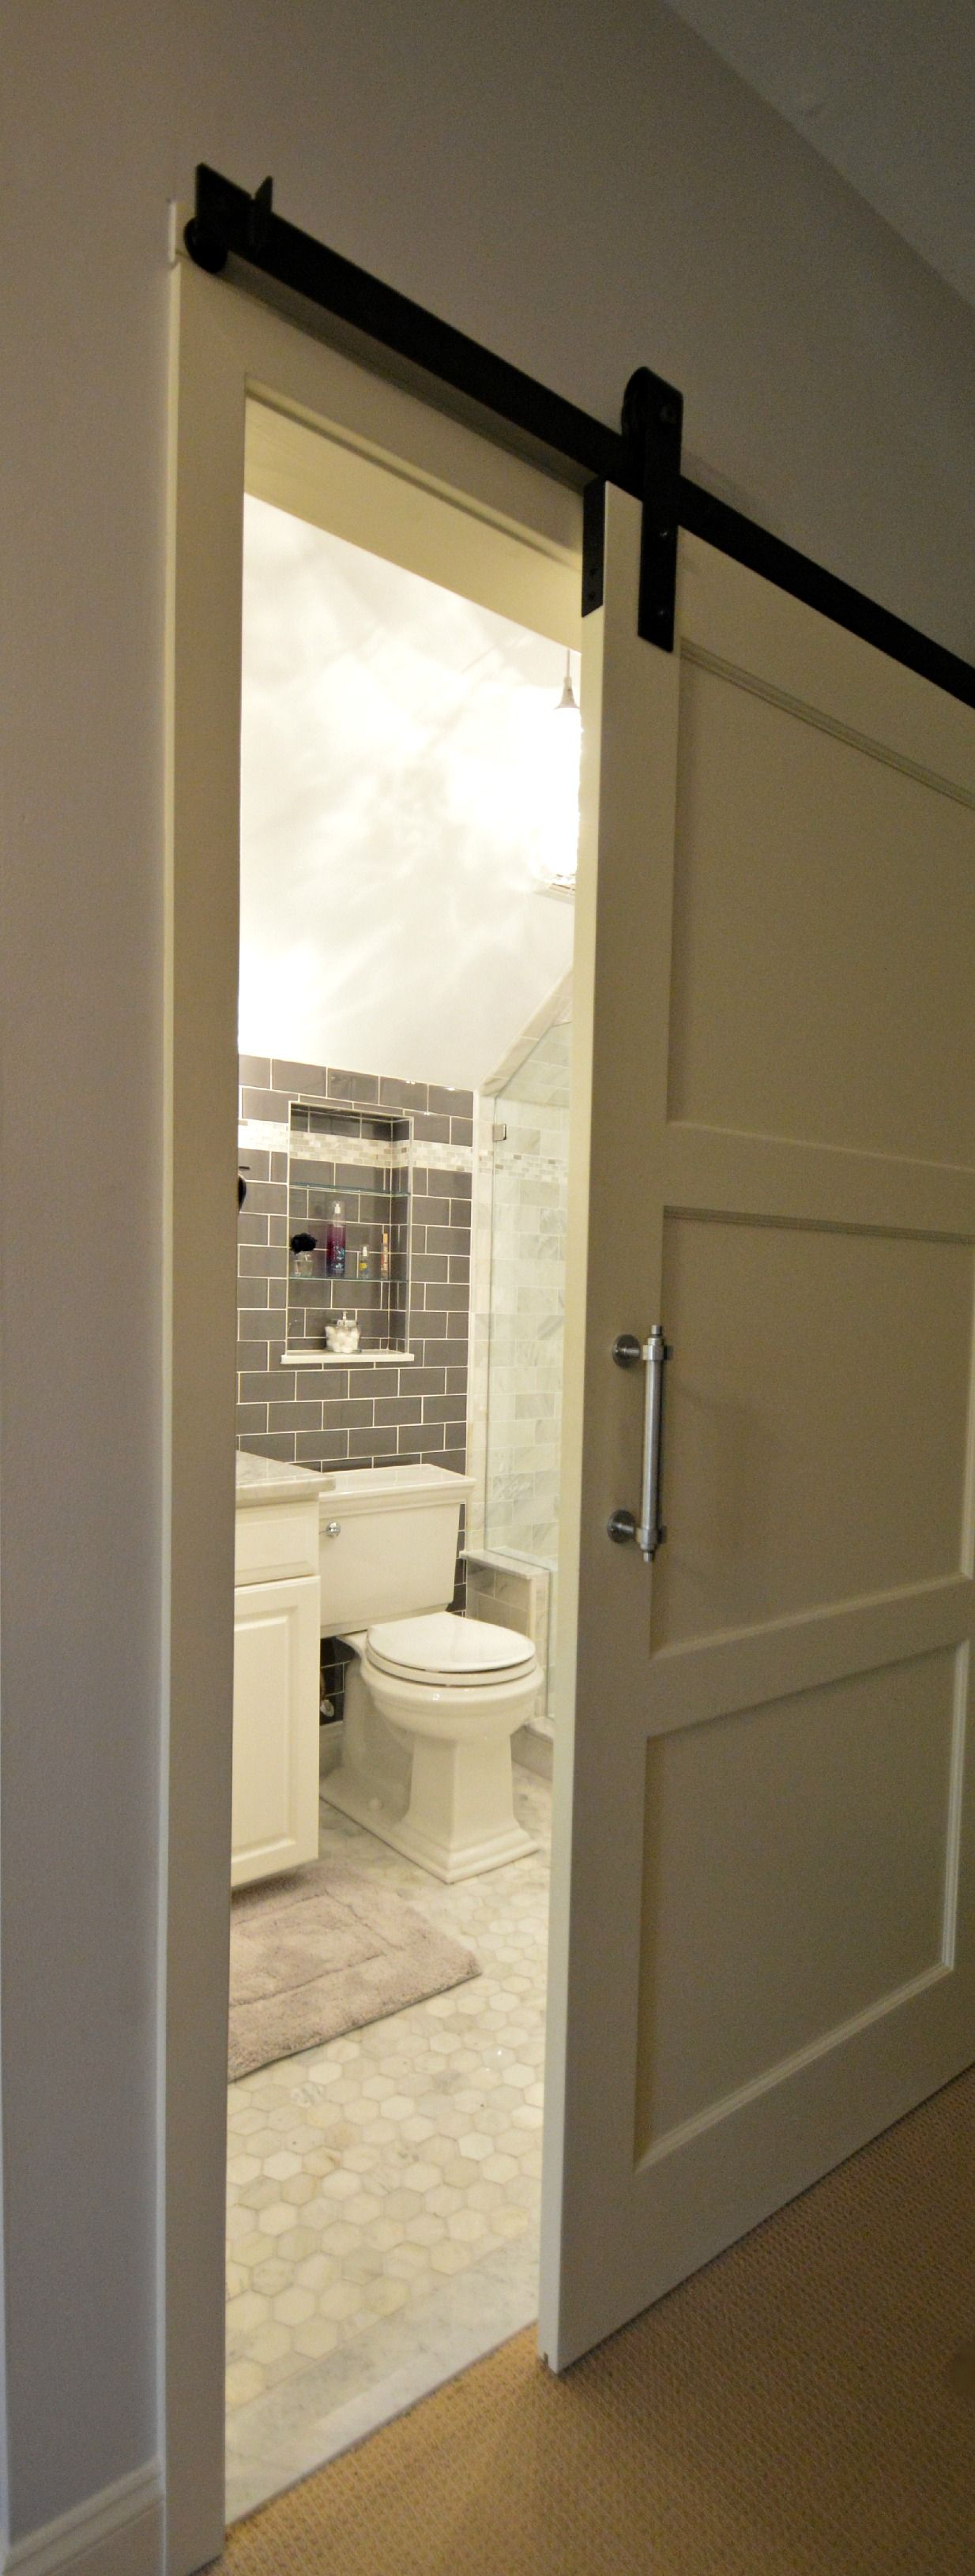 This Tiny Bathroom Remodel Needed As Much Space As Possible, So We Custom  Made This